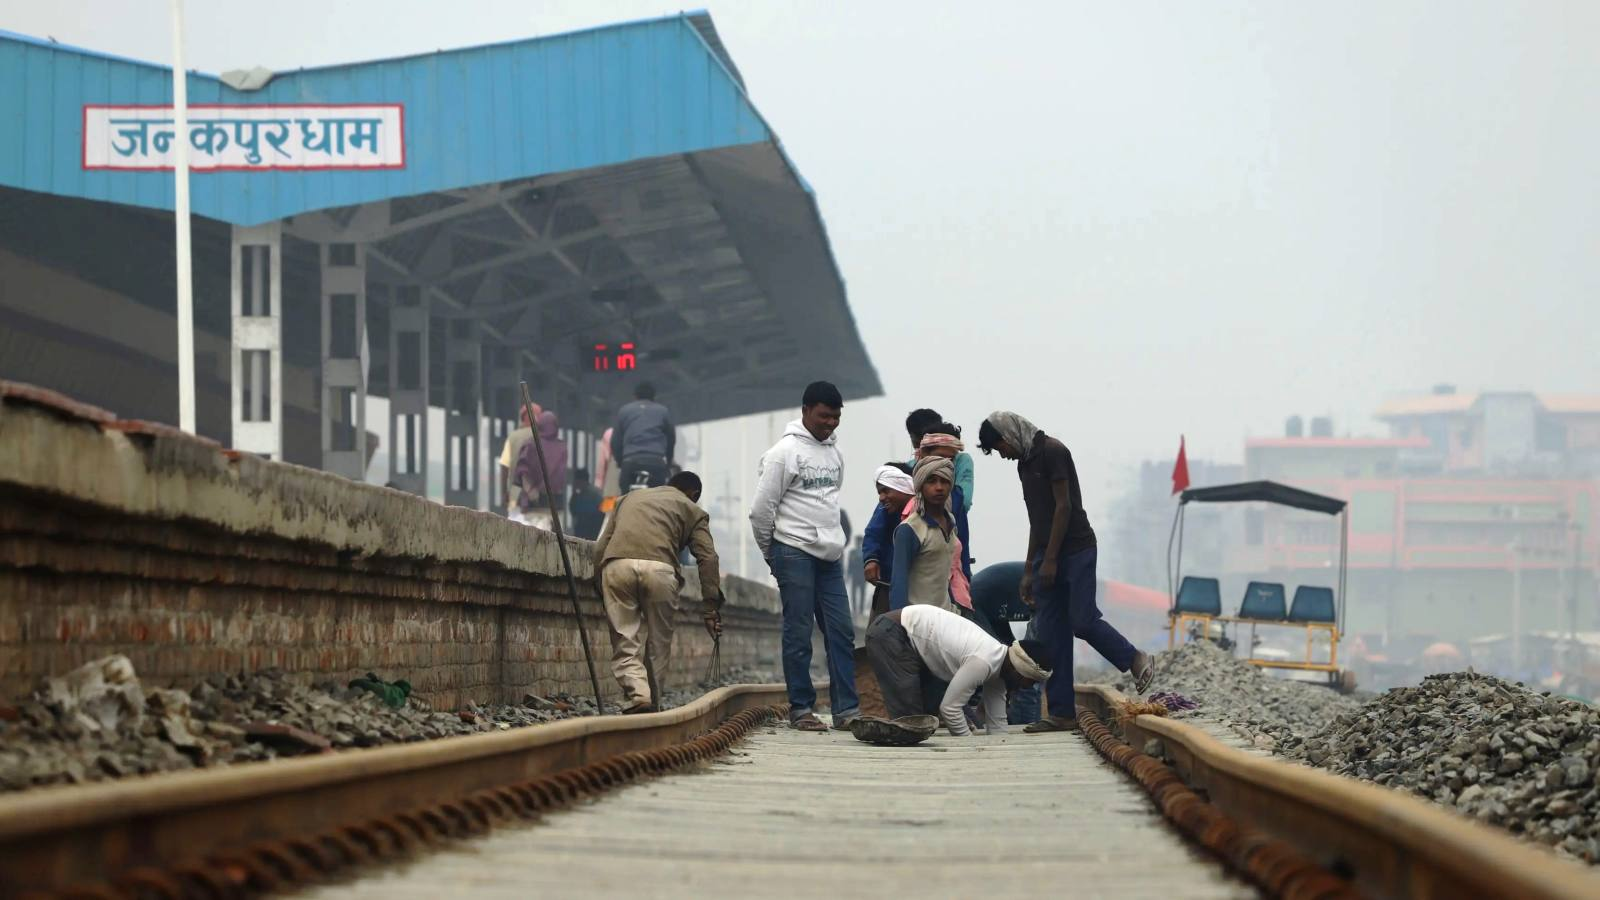 Nepal's extant rail link with India will be one of few parts of the network to use its southern neighbor's favored broad gauge. (Photo by Yuji Kuronuma)